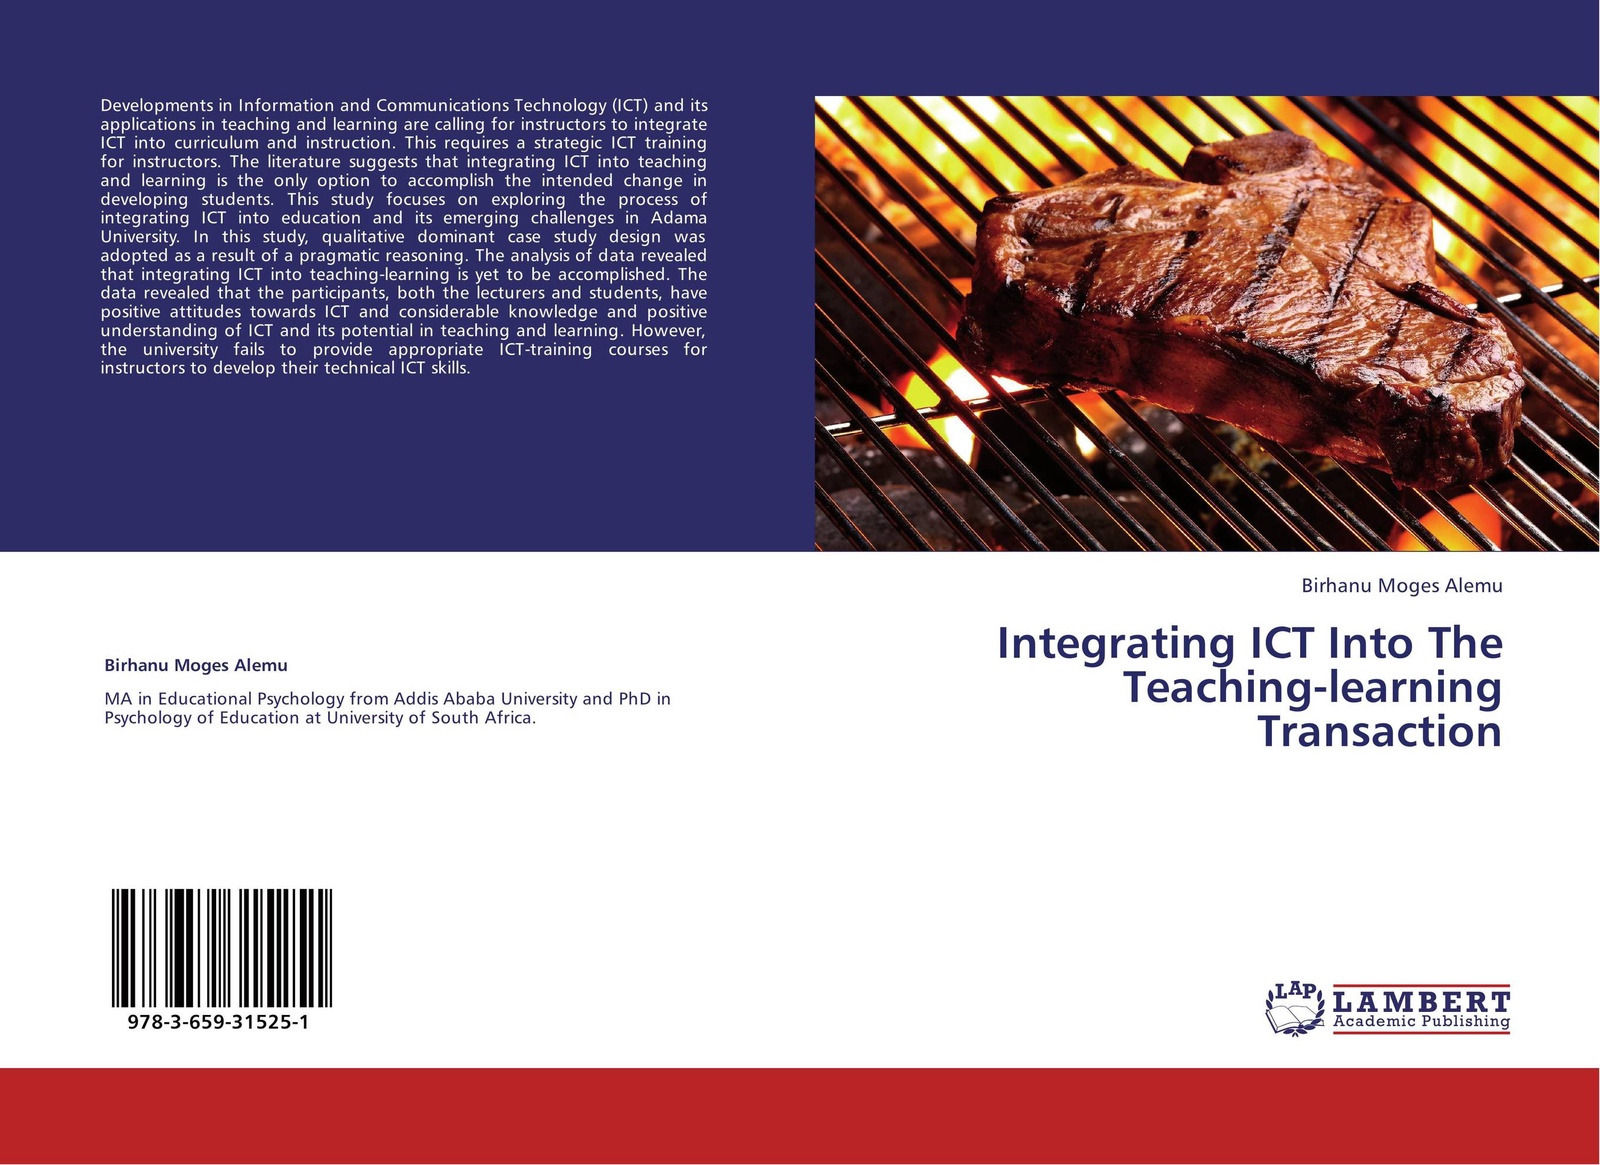 Birhanu Moges Alemu Integrating ICT Into The Teaching-learning Transaction economies of scale in ict